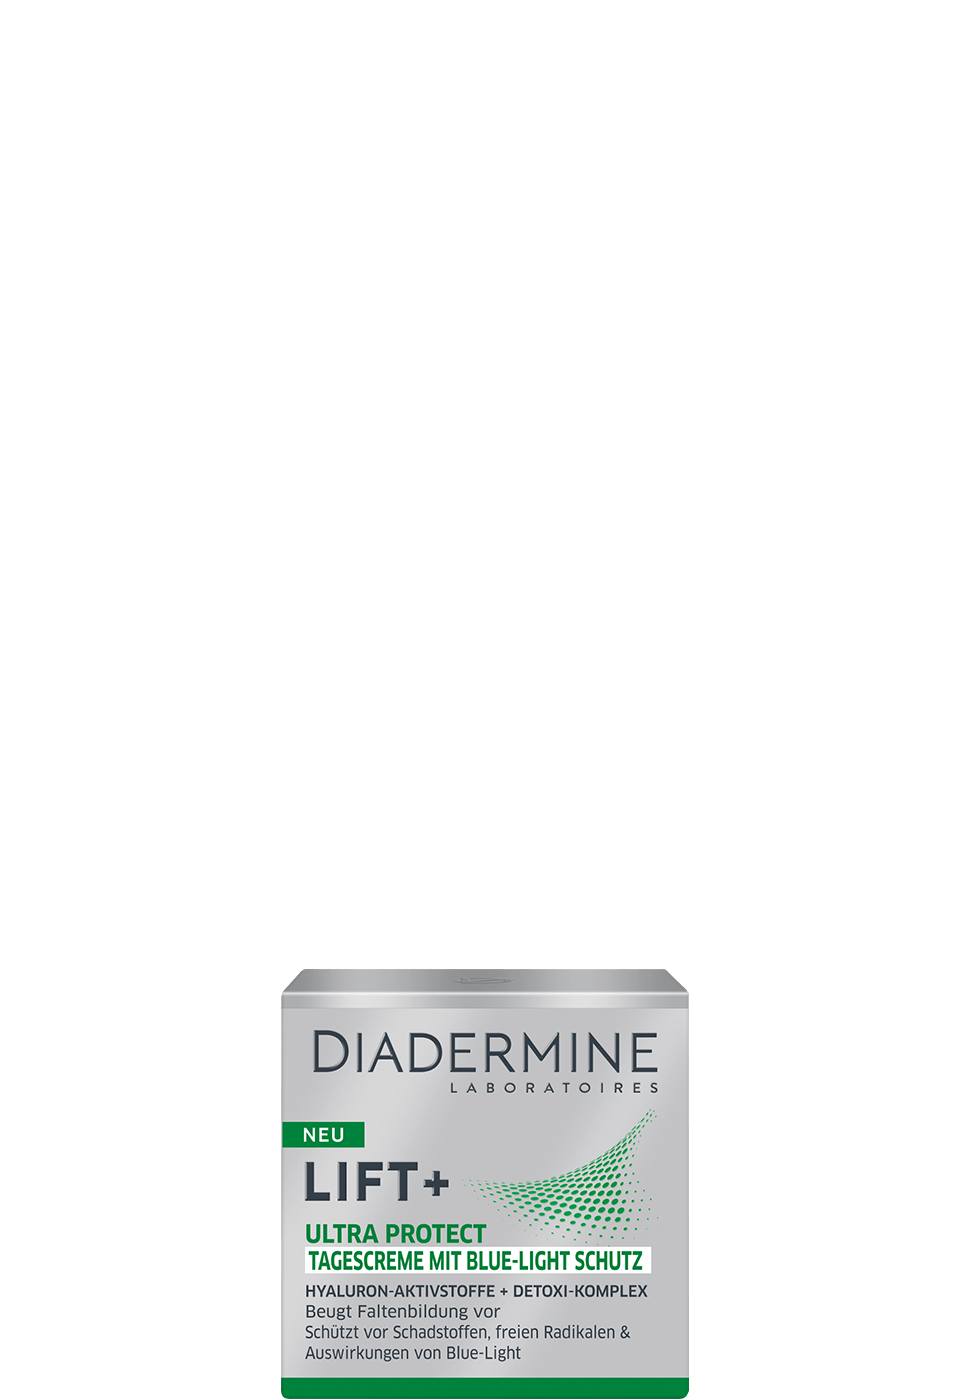 diadermine_at_lift_plus_ultra_protect_tagescreme_970x1400